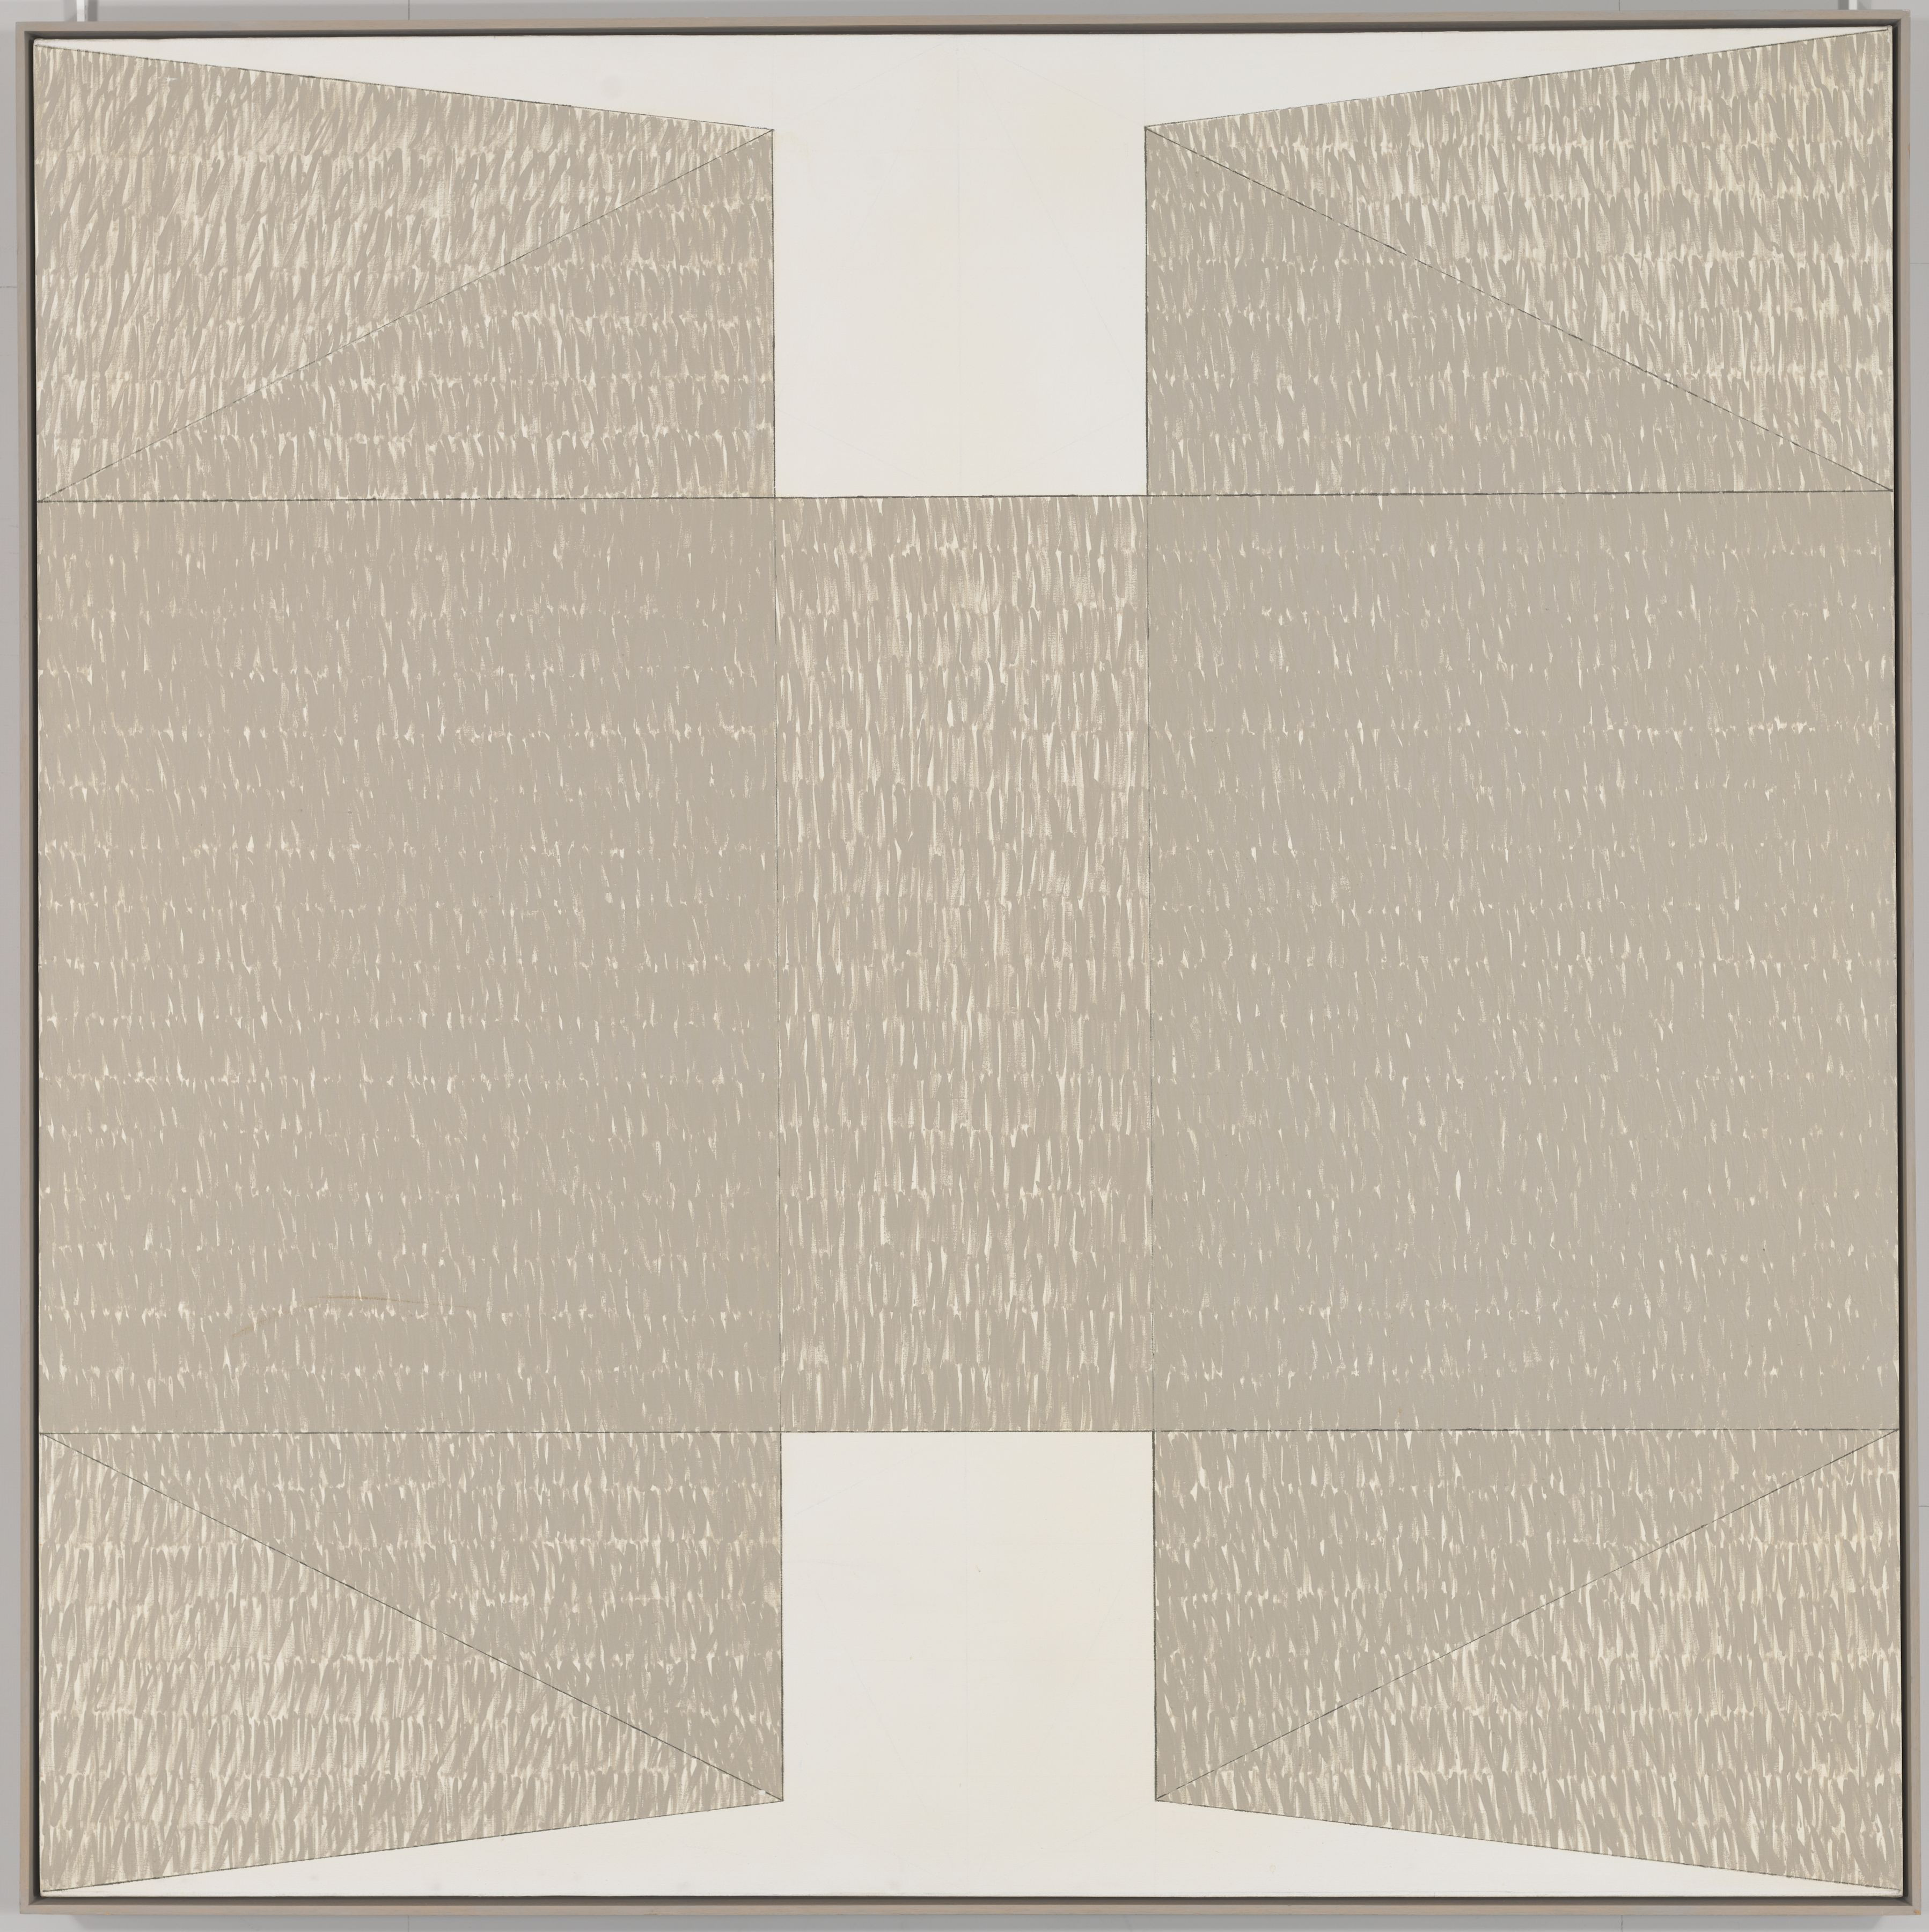 Q3-74 #2, 1974, Oil on canvas